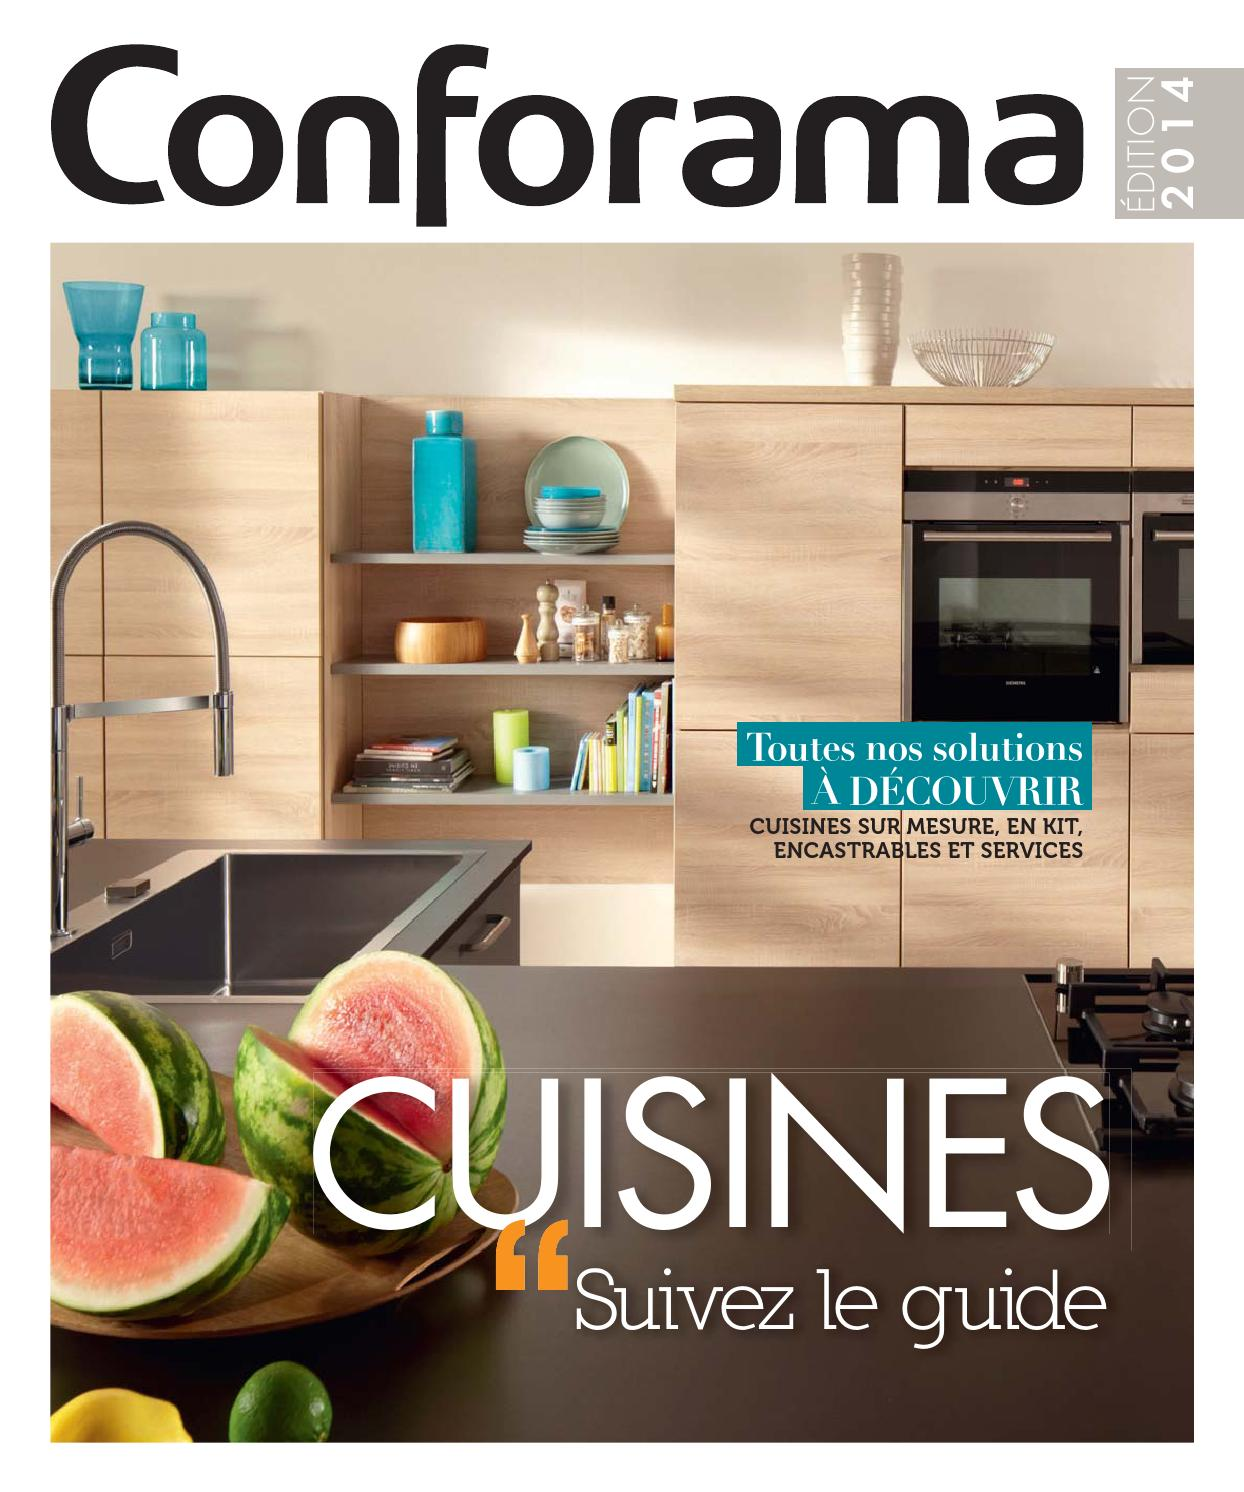 Catalogue Conforama - Guide Cuisines 14 by joe monroe - issuu